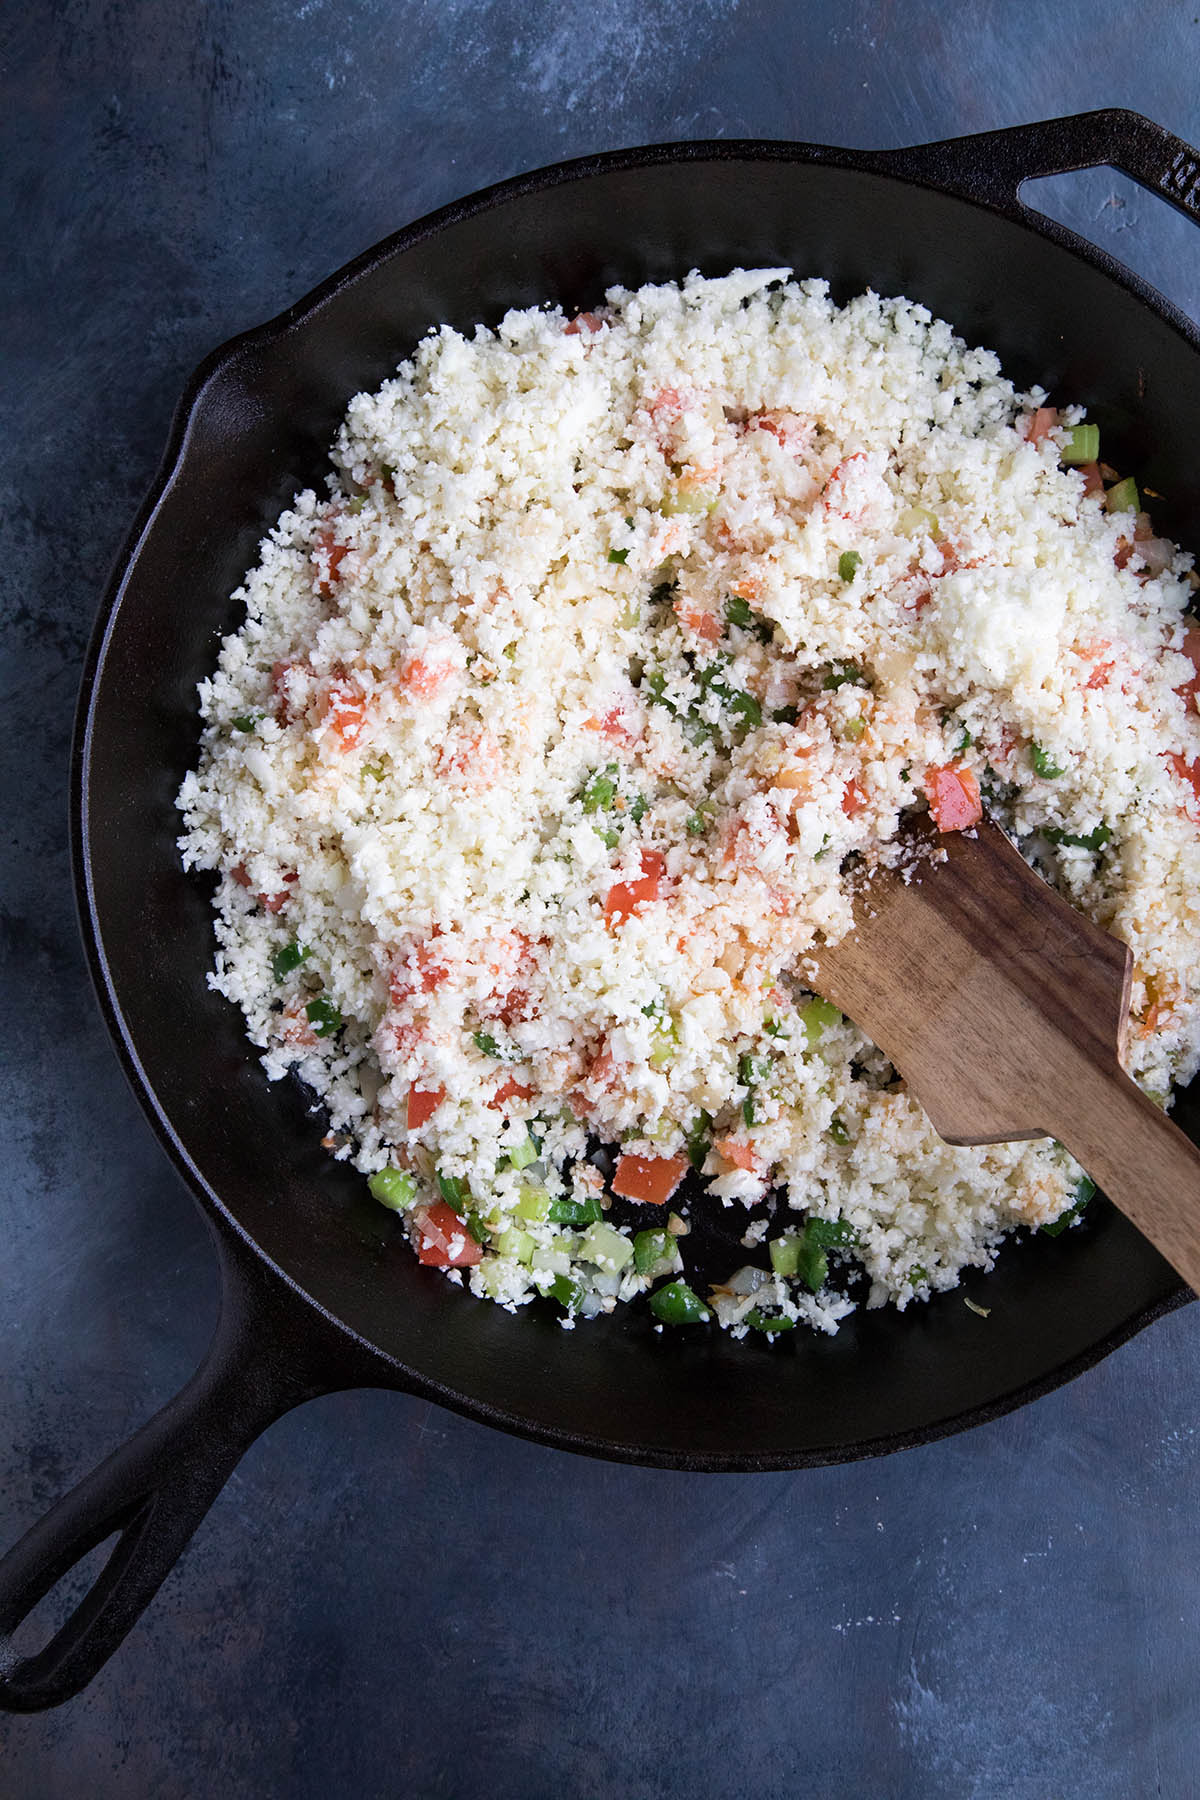 Making Cajun Cauliflower Rice - Stir in the Riced Cauliflower